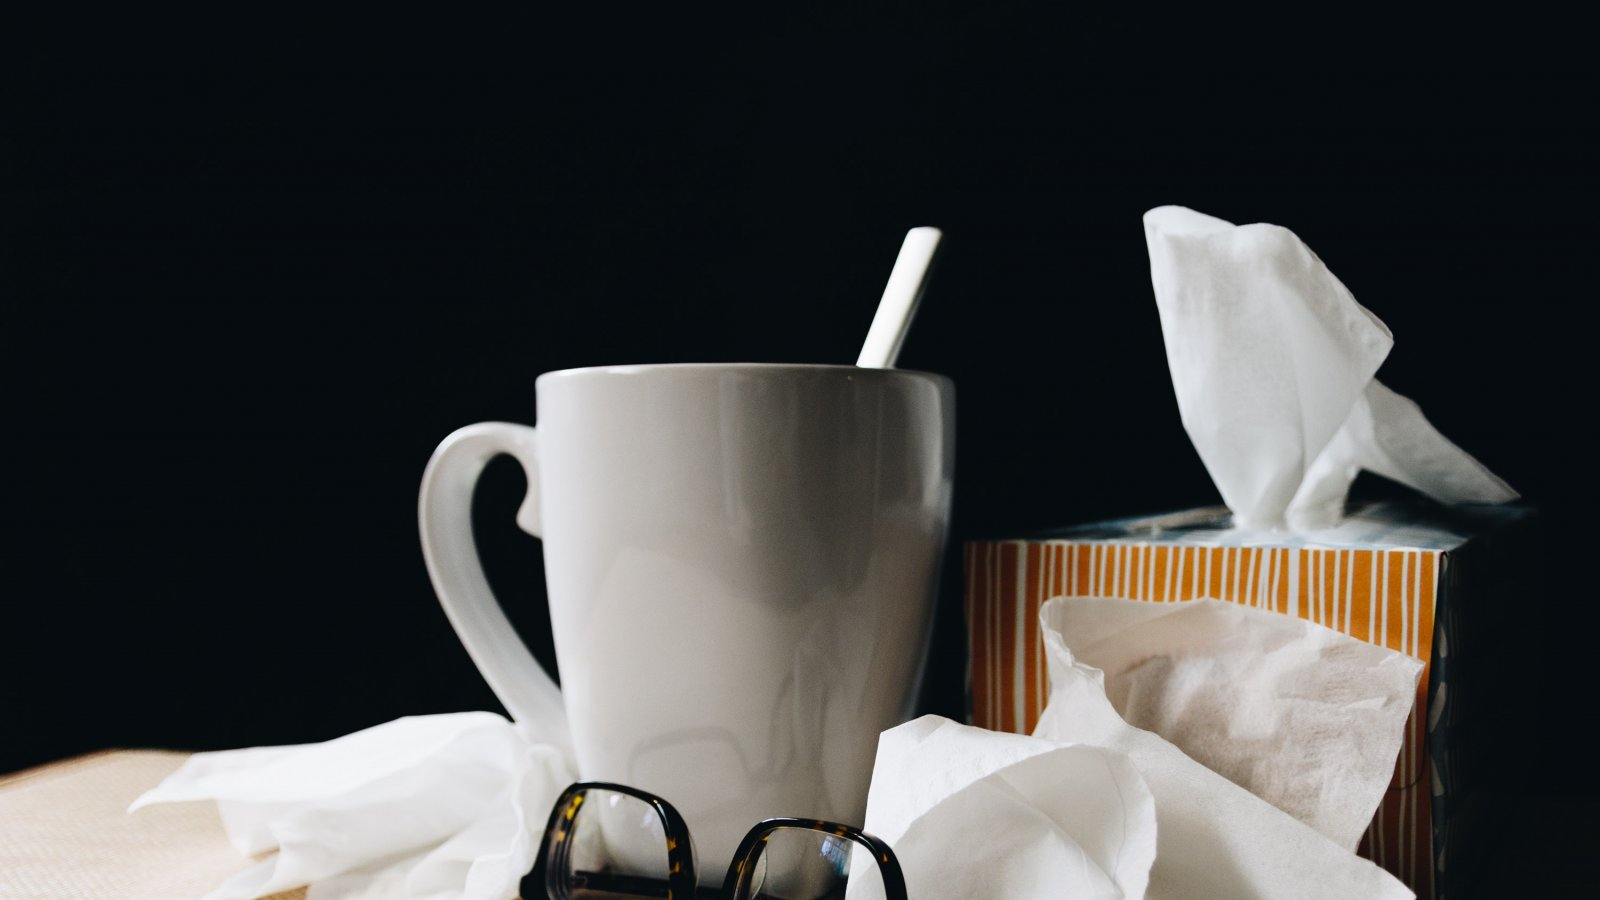 Mug with tissues